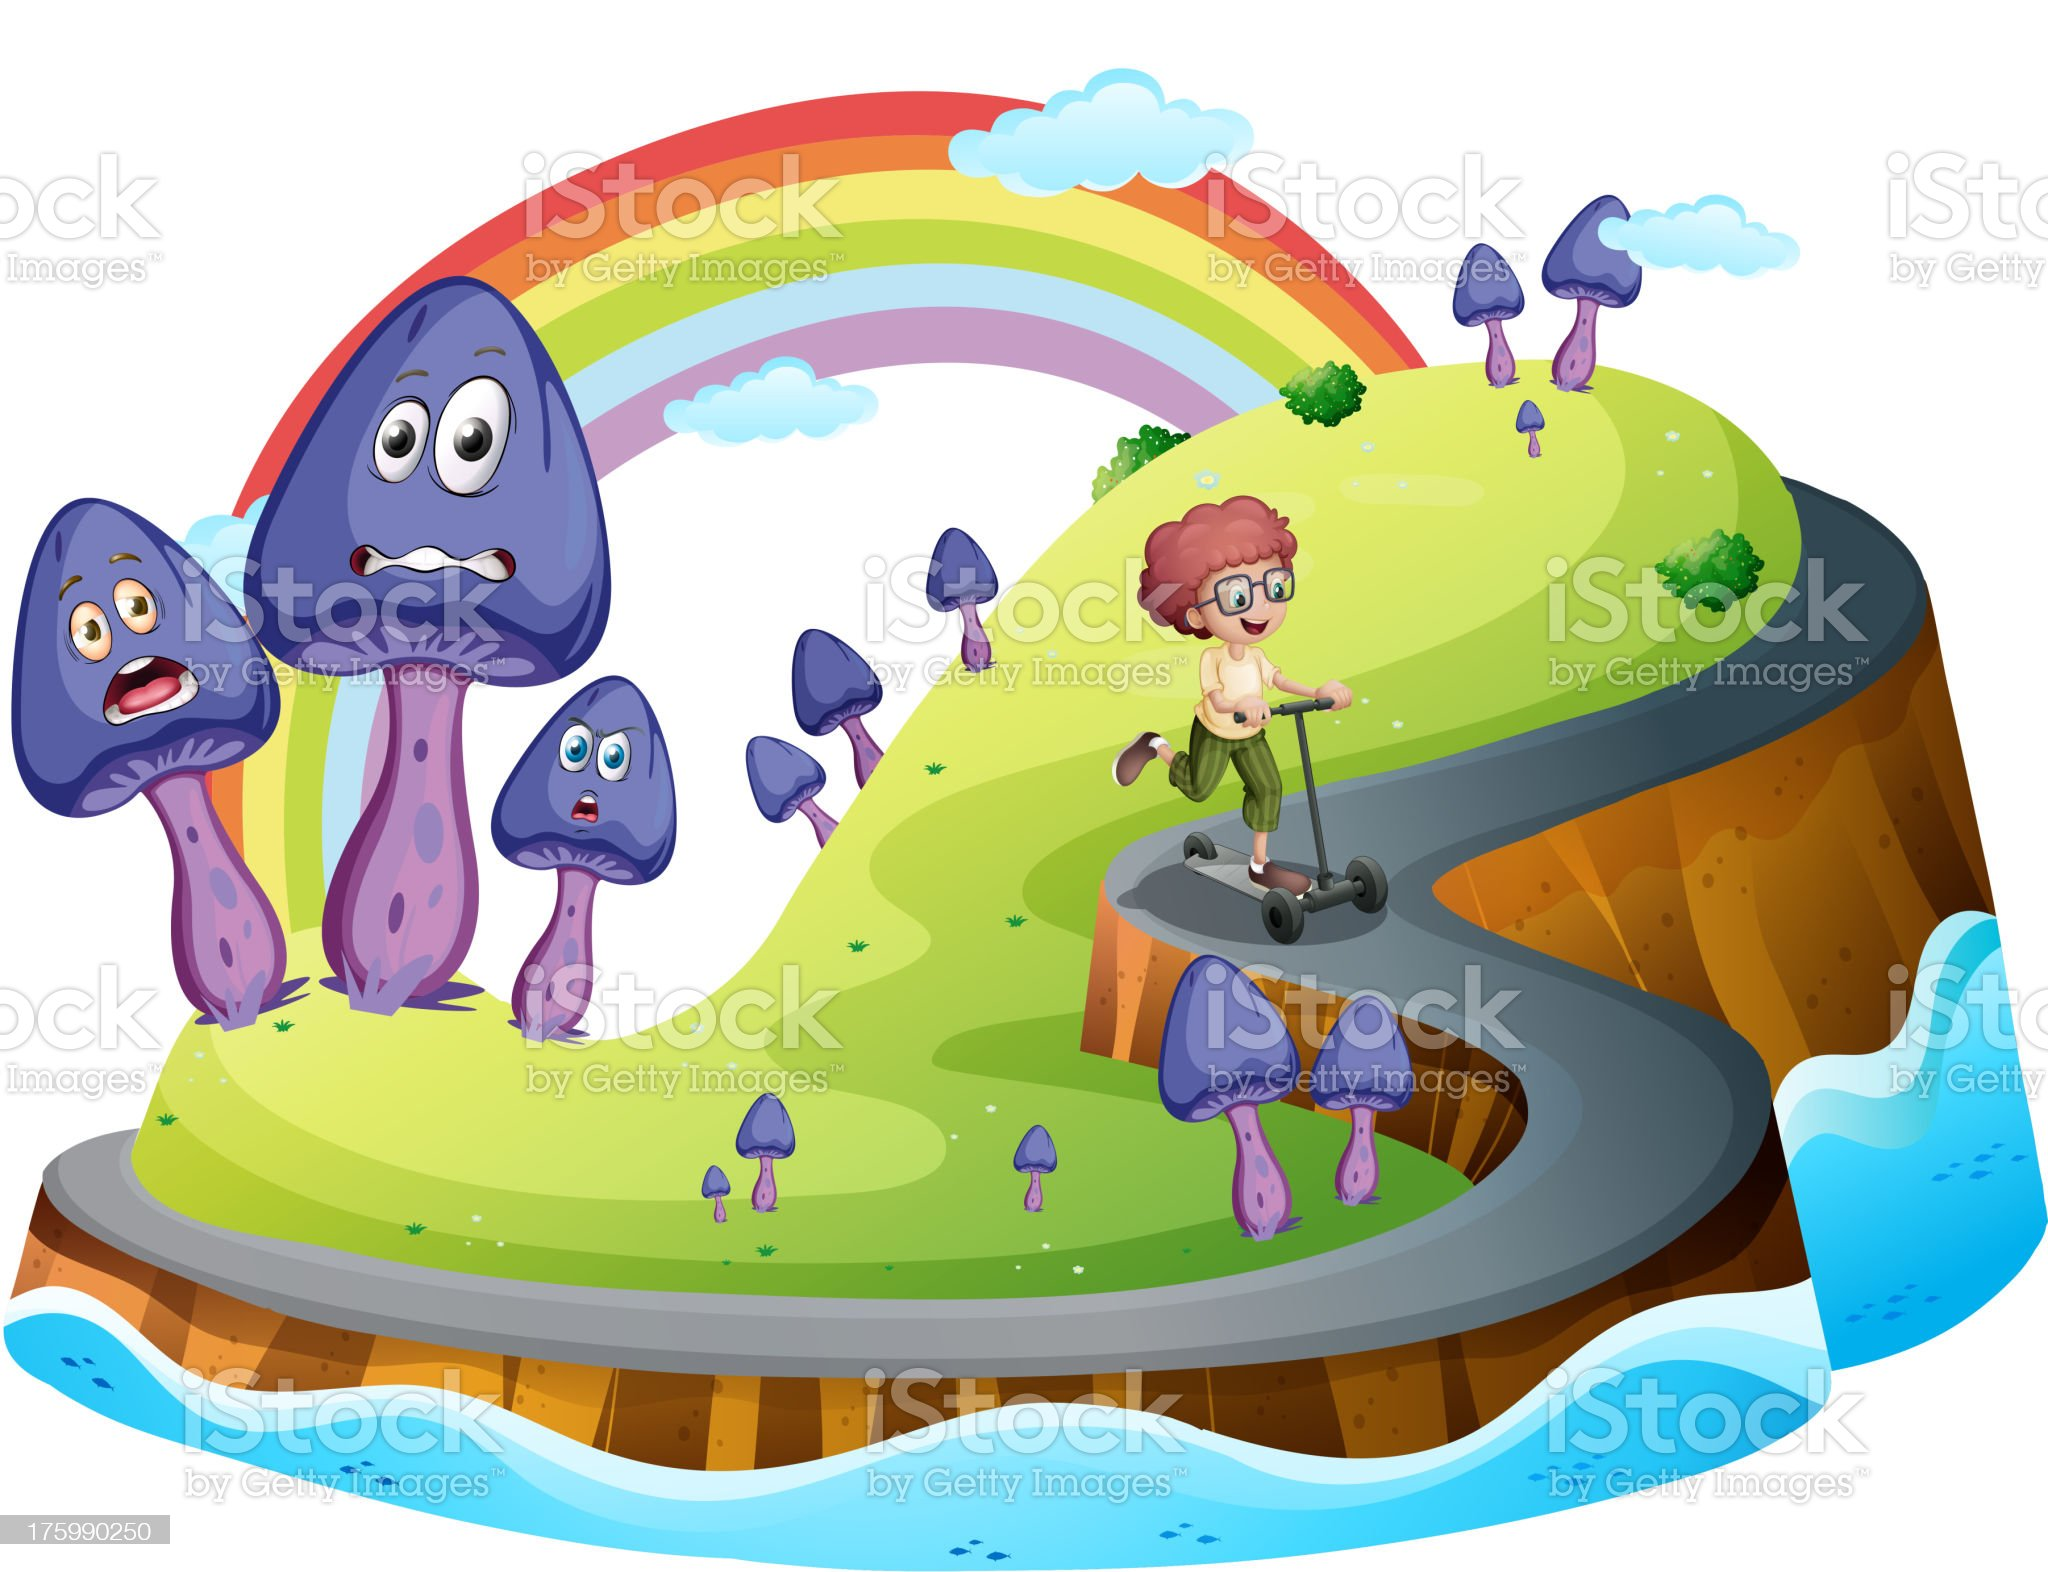 Boy playing his scooter at road surrounded with mushroom plants royalty-free stock vector art